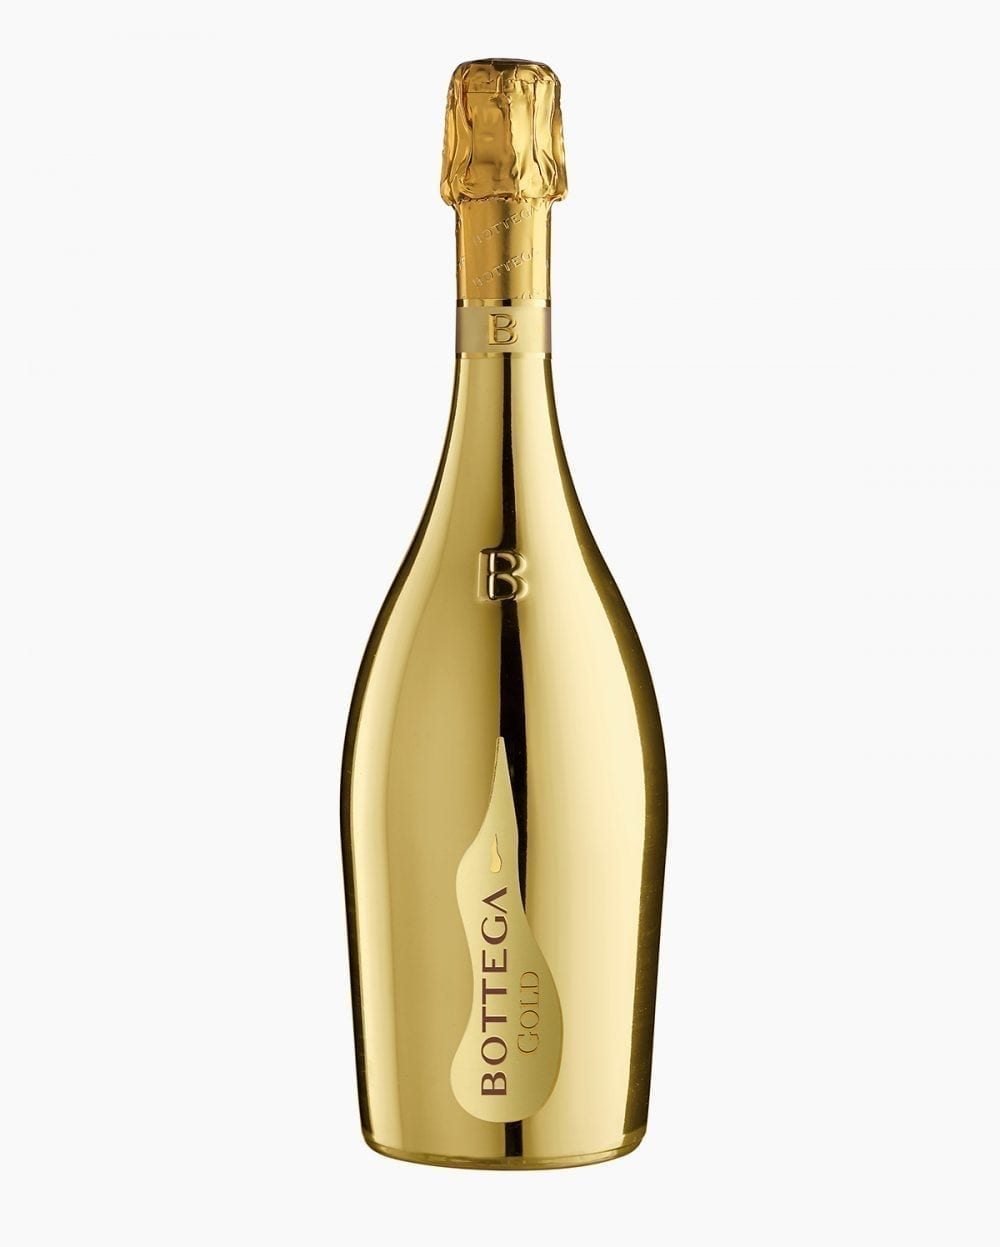 bottega-gold-prosecco-doc-brut-75cl-1